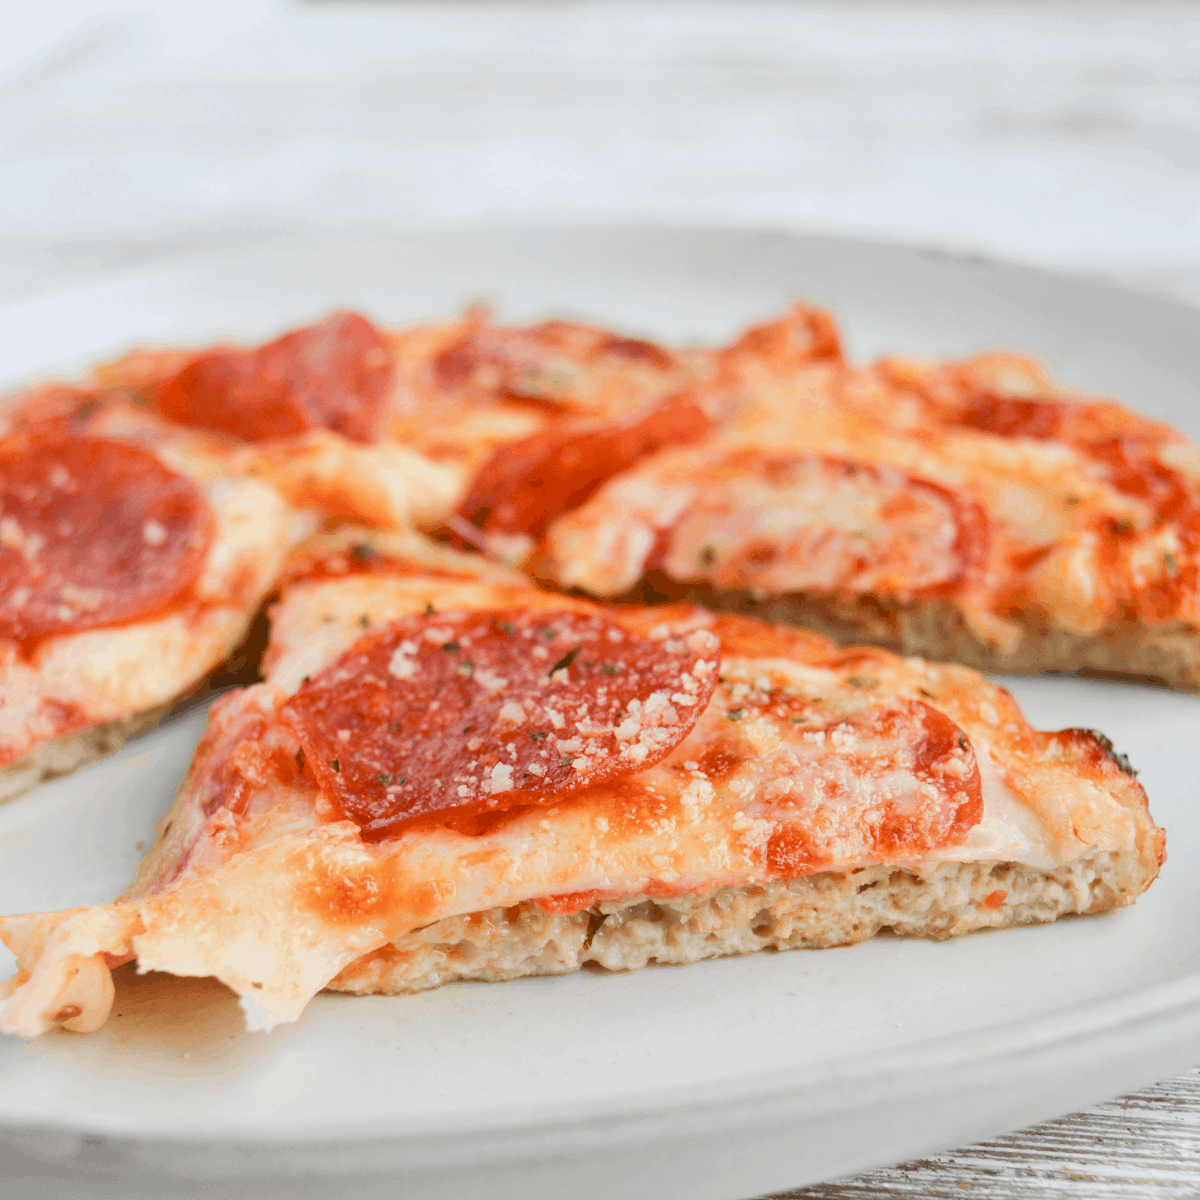 slice of air fryer chicken crust pizza, showing the texture of the crust